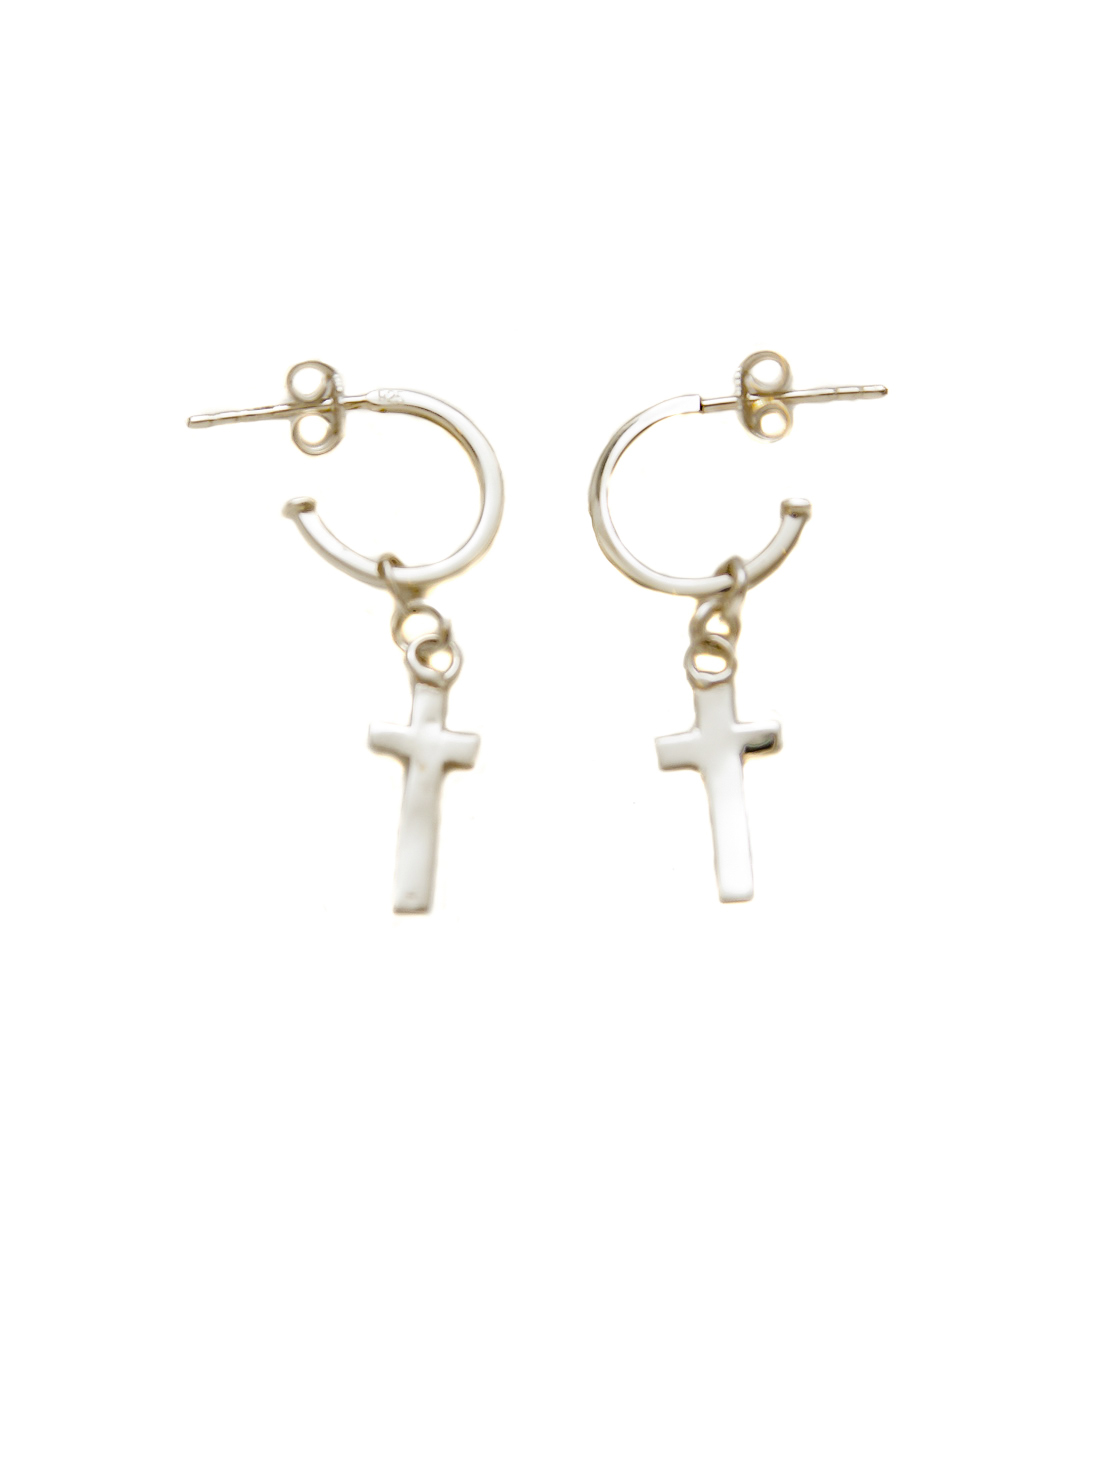 Silver Hoop Earrings With Silver Cross